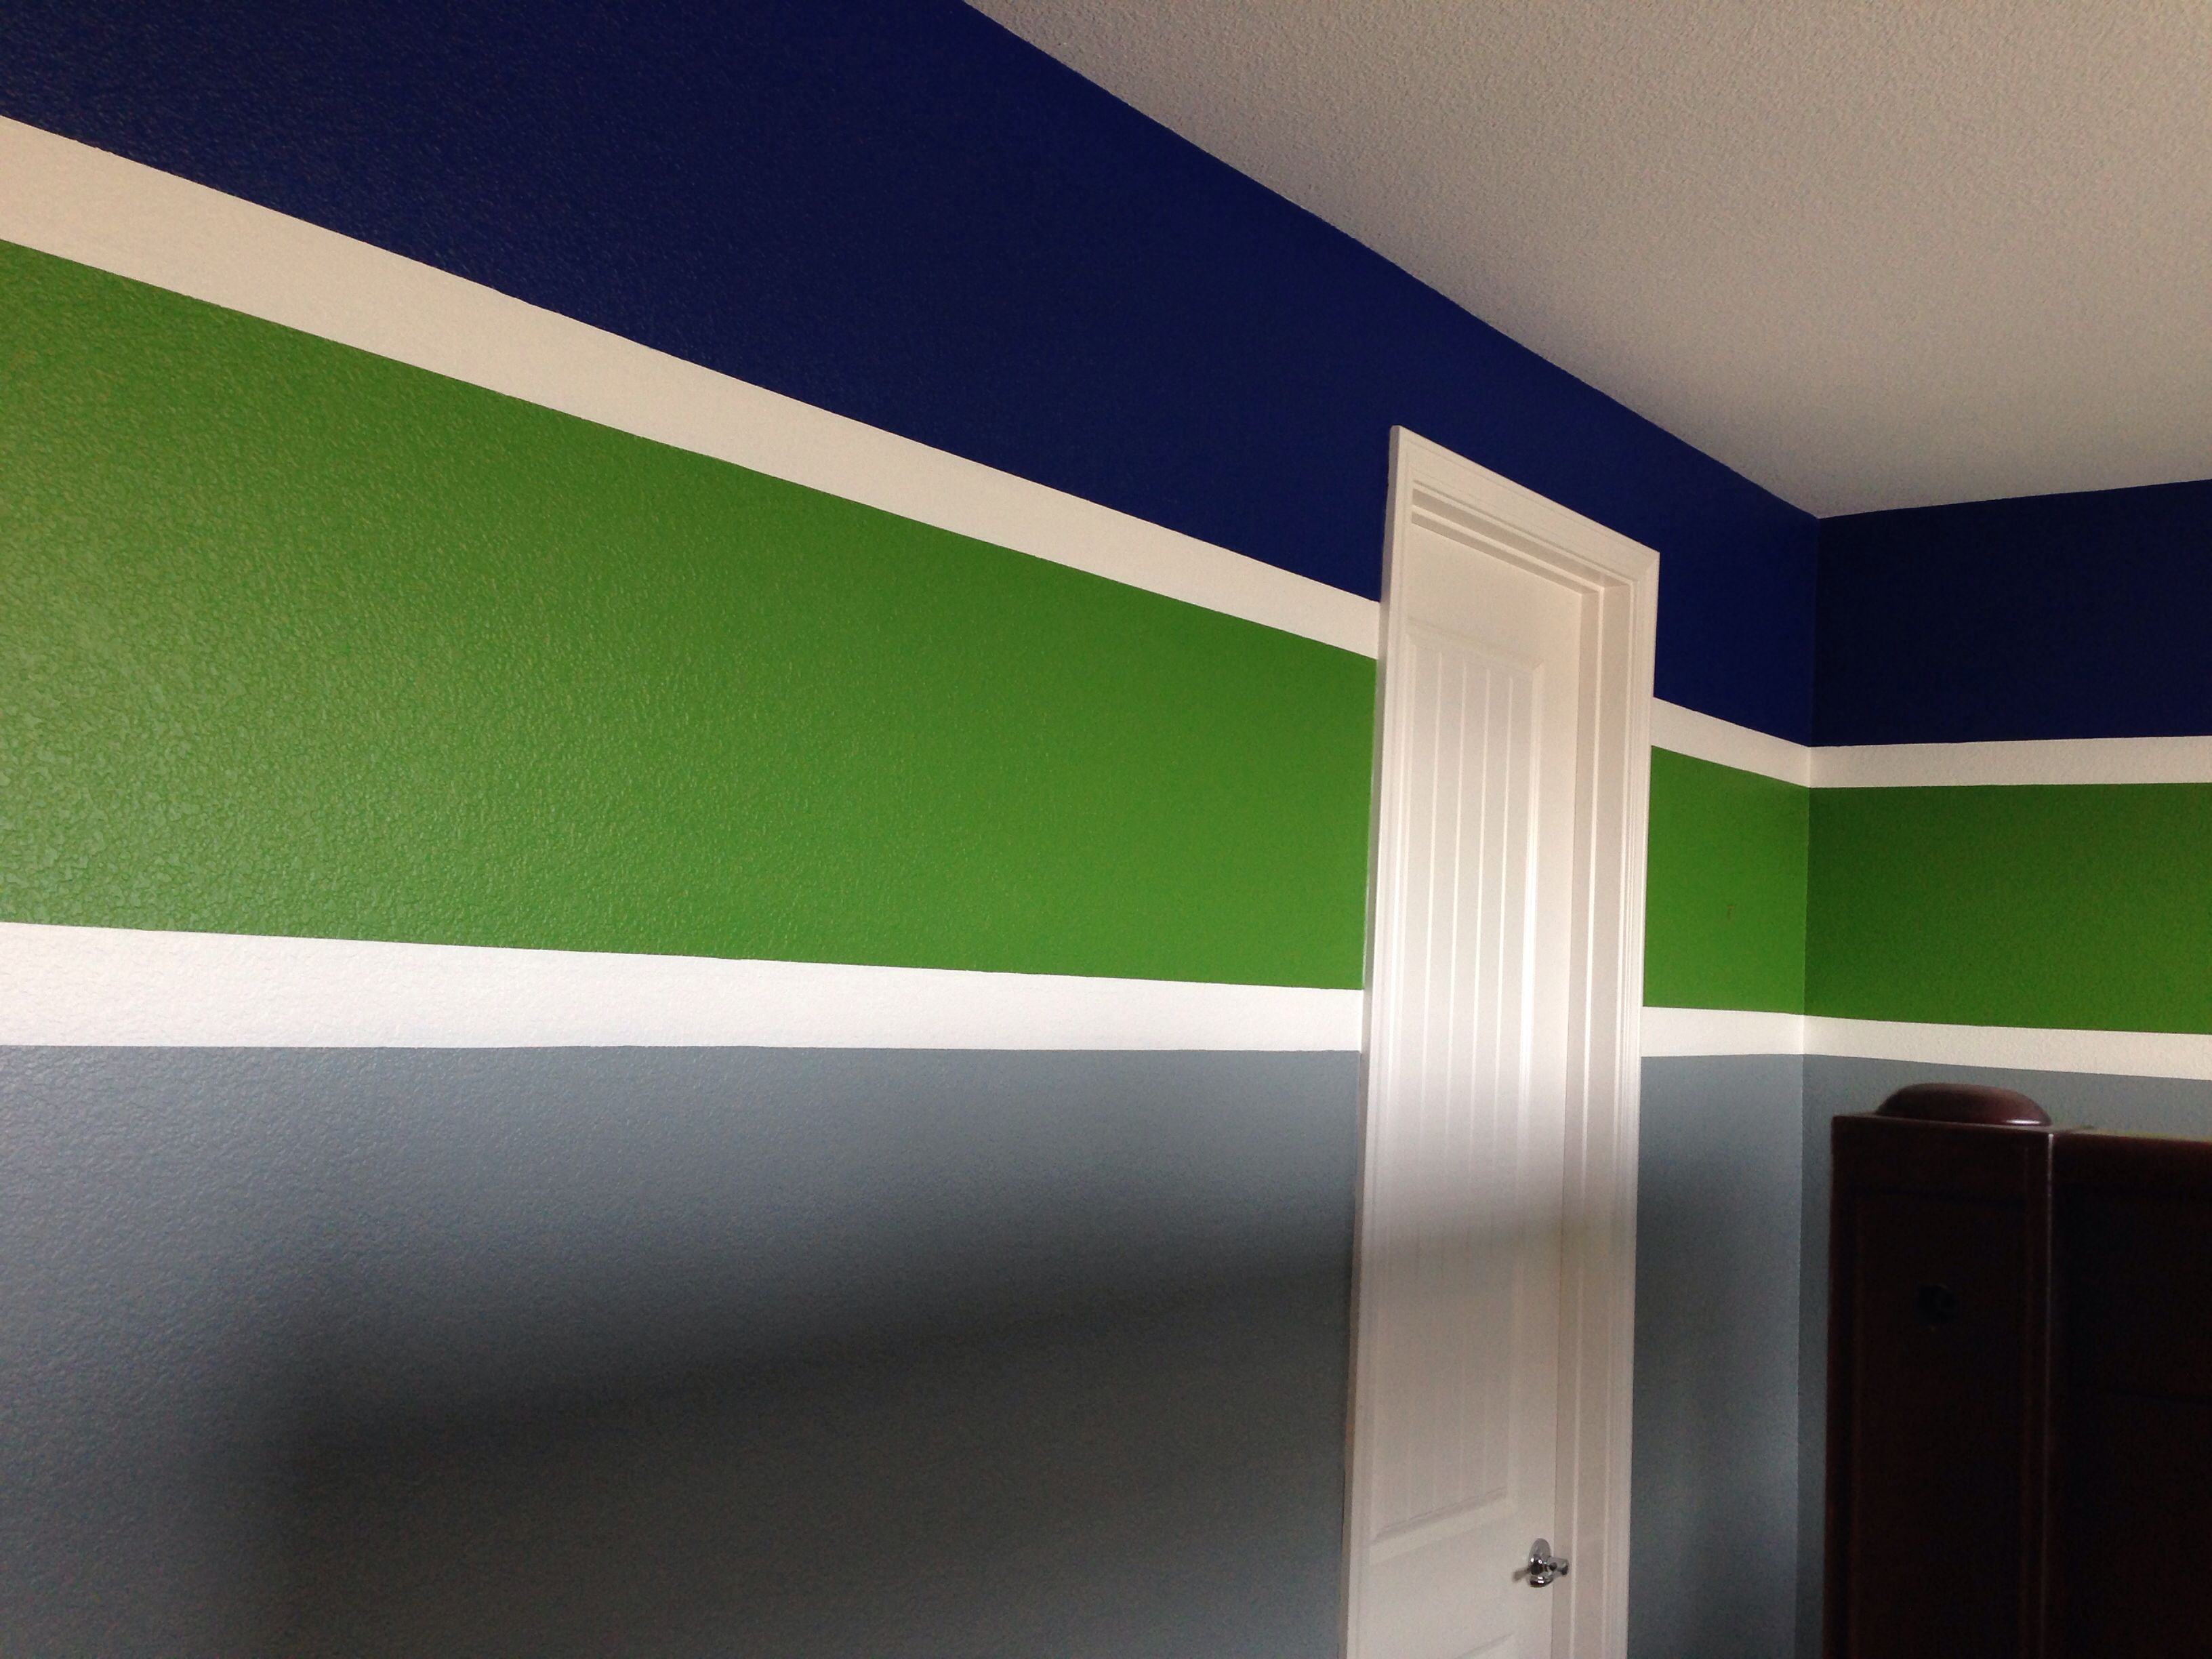 Green boys bedroom ideas - Boy Room Paint Colors